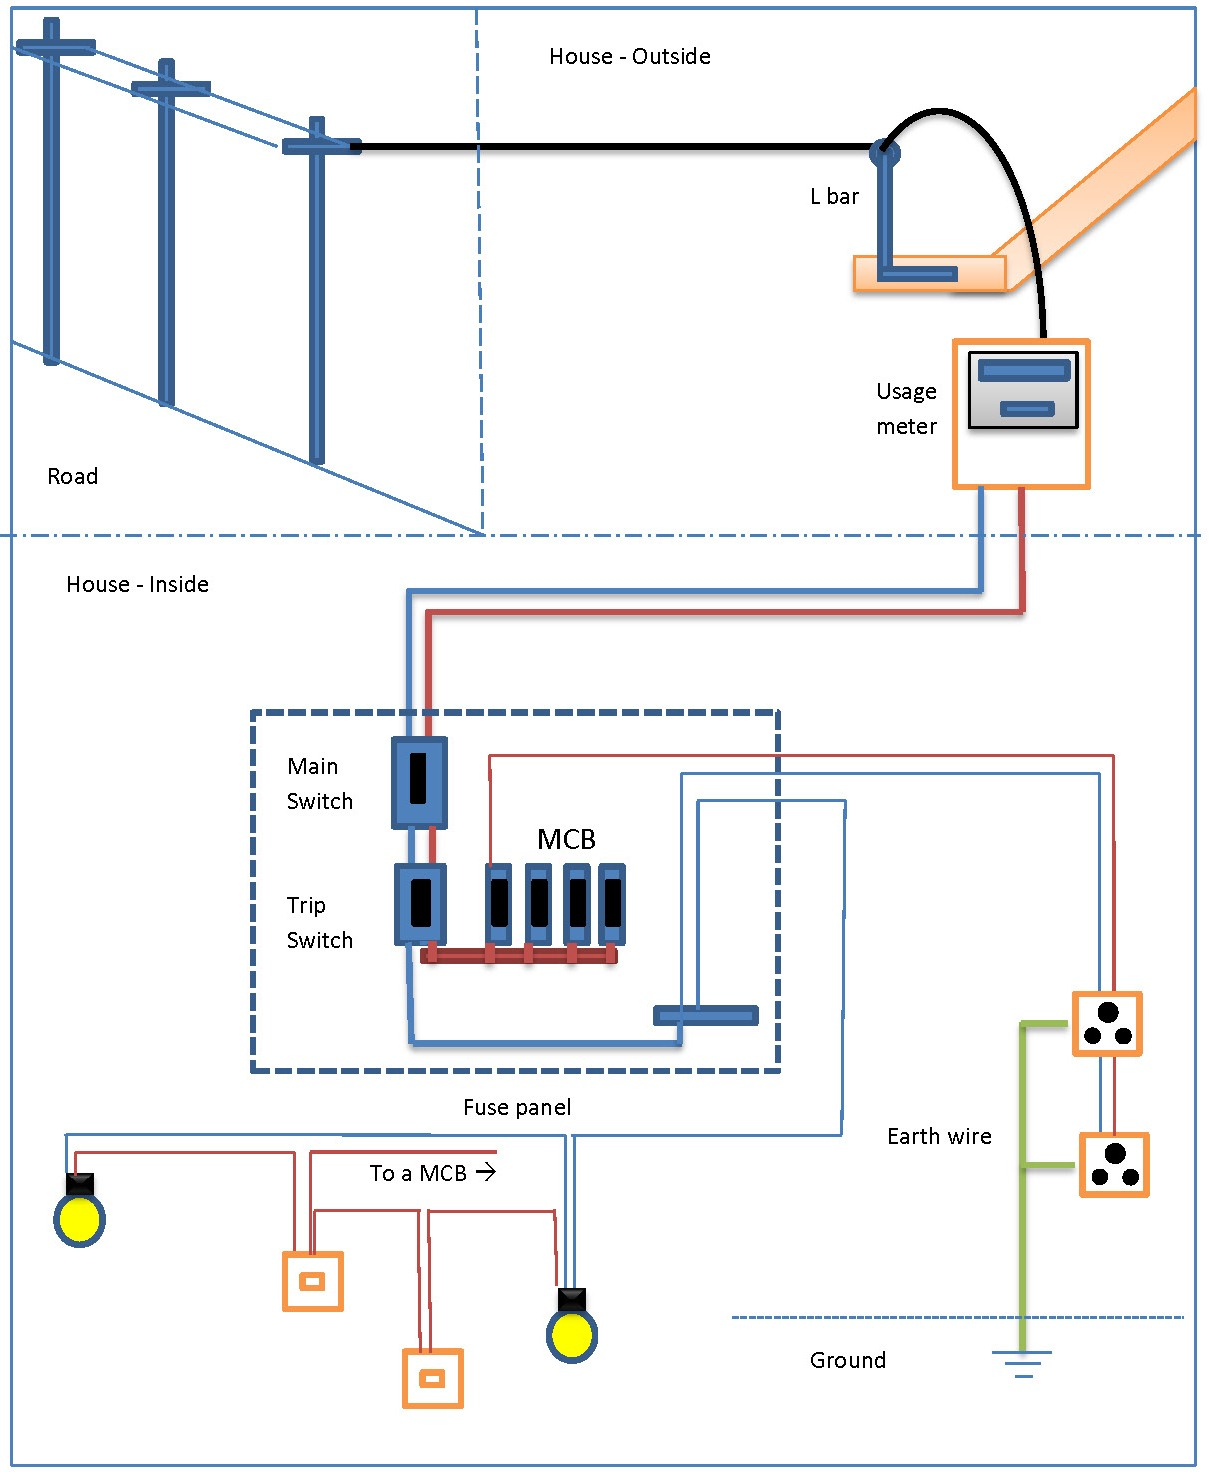 Doc3 senasum's blog house wiring diagram sri lanka wiring diagram house at aneh.co